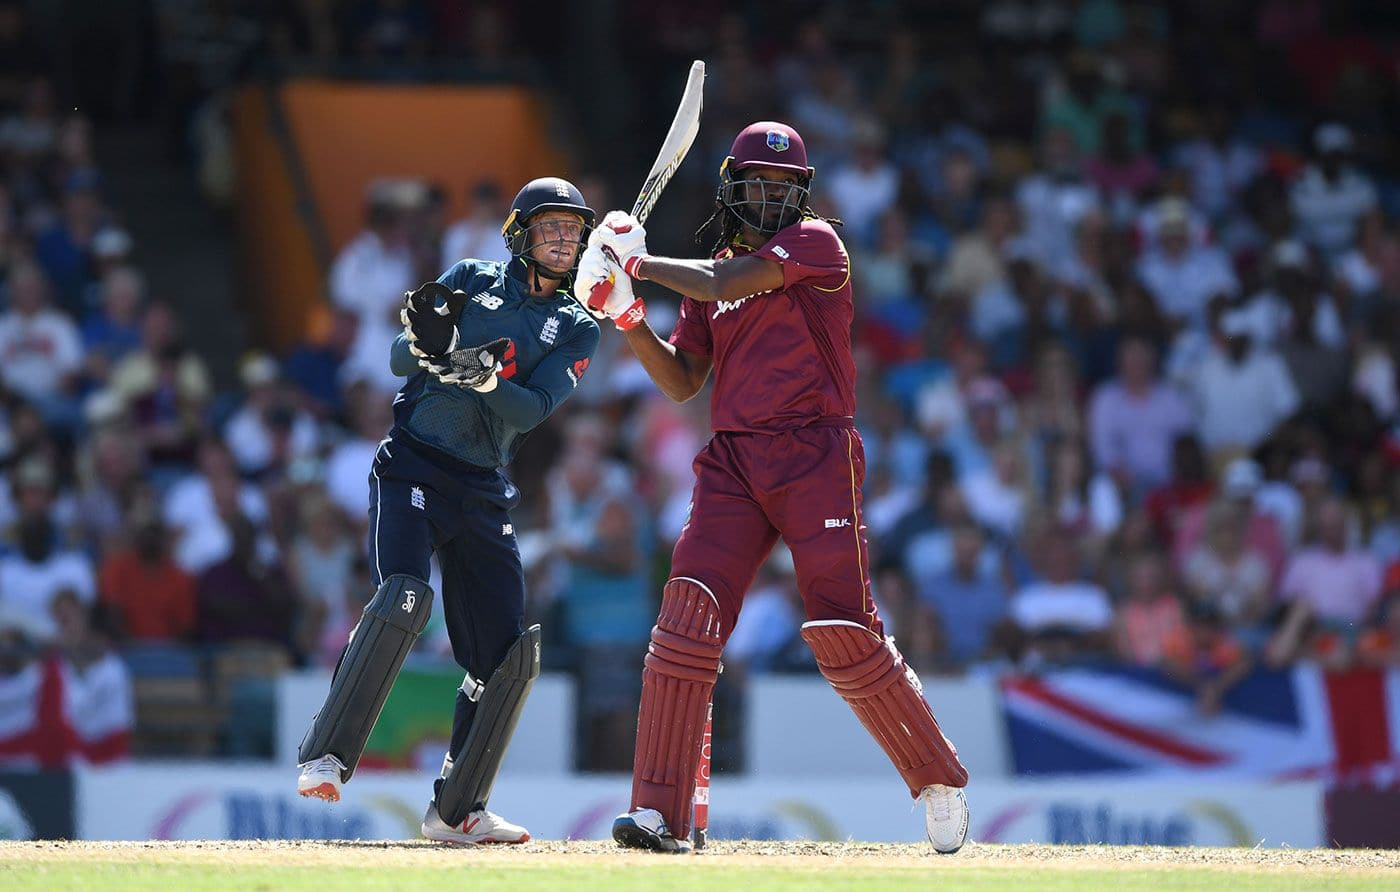 Chris Gayle nearing Brian Lara as only West Indian with 10,000 ODI runs